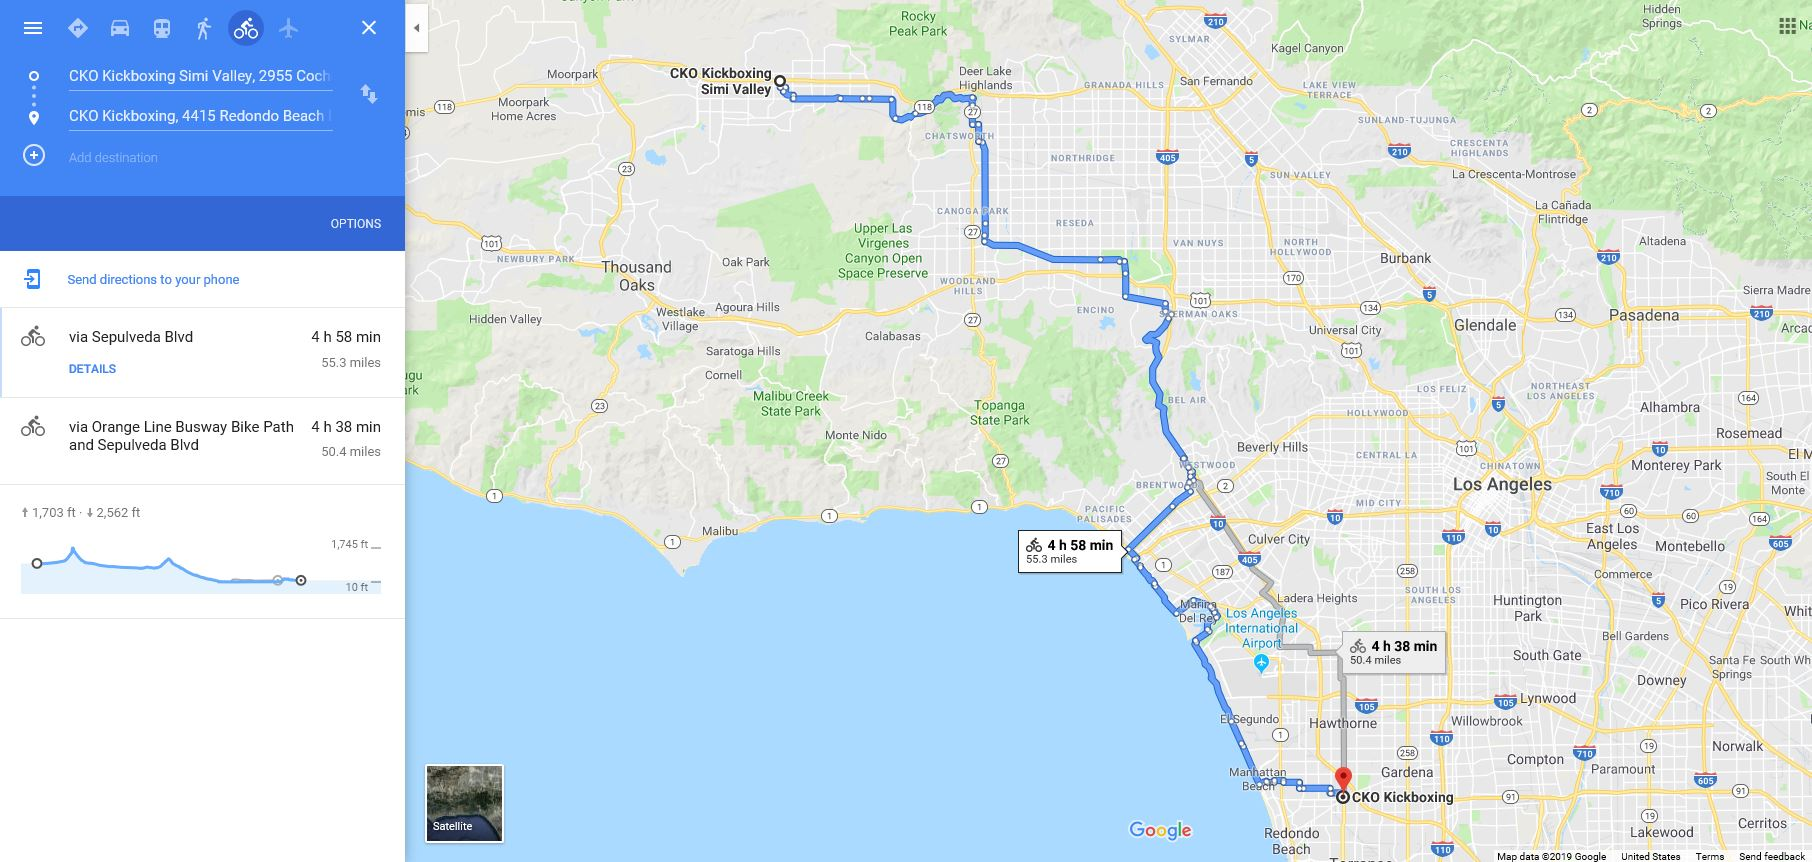 55 Mile Bike Ride - checkpoints11am CKO Simi valley-ride430pm CKO South Bay (interview)530pm CKO South bay kickboxing class (gloves required)